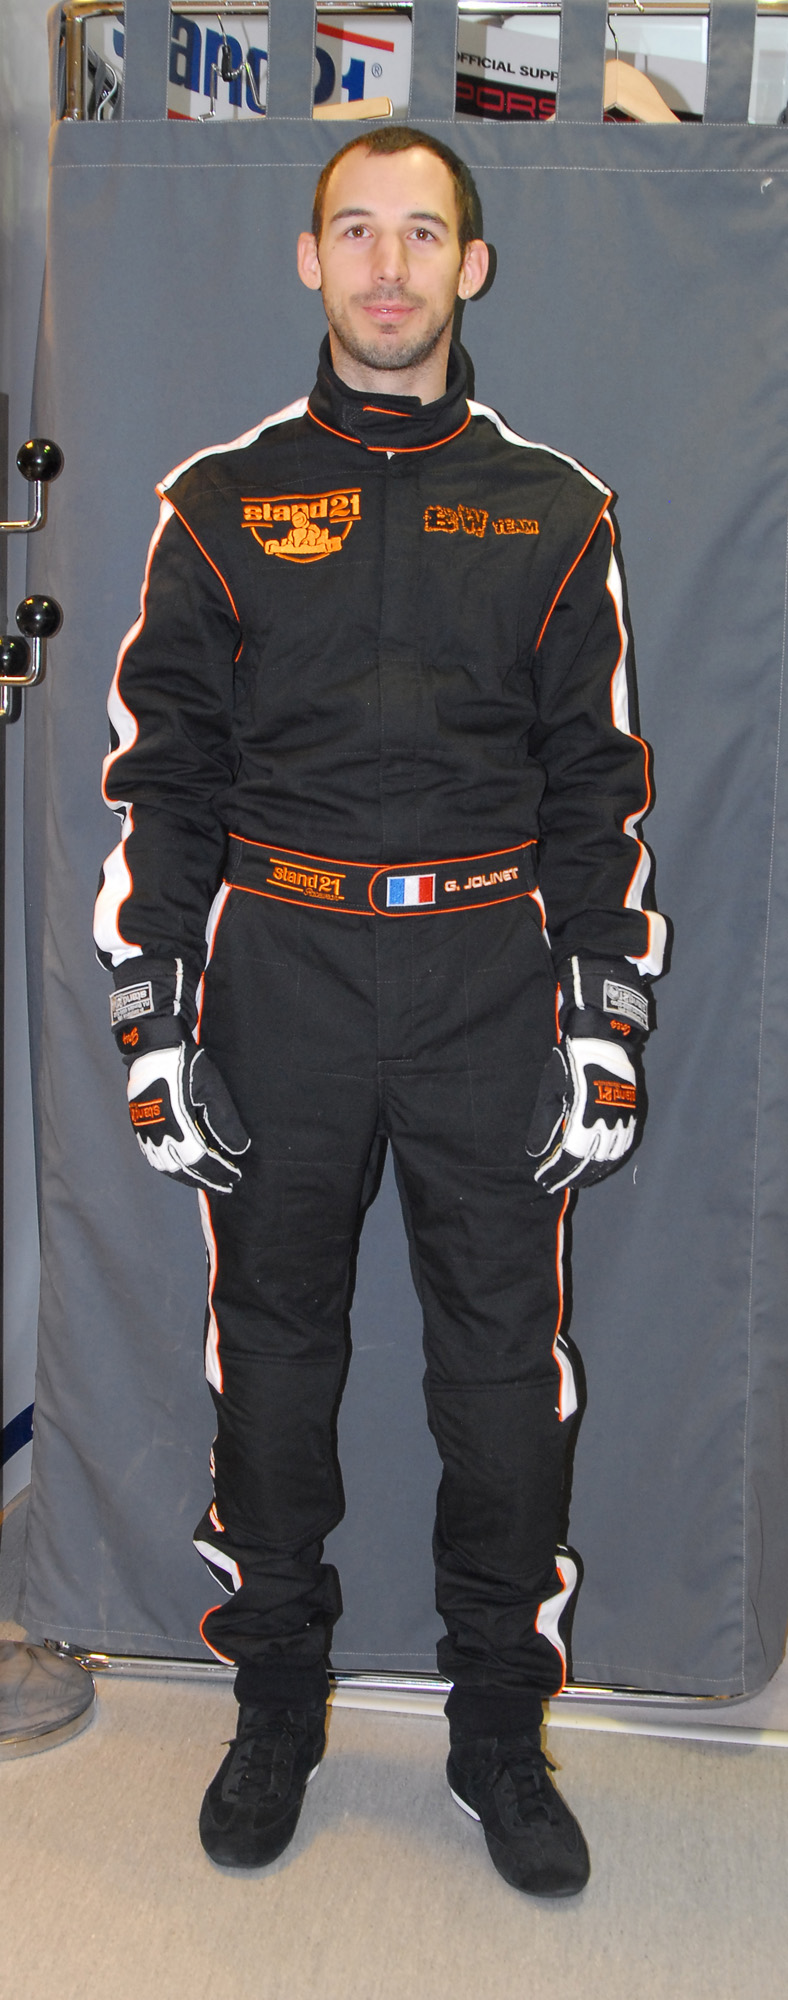 Customized K021 go-kart suit